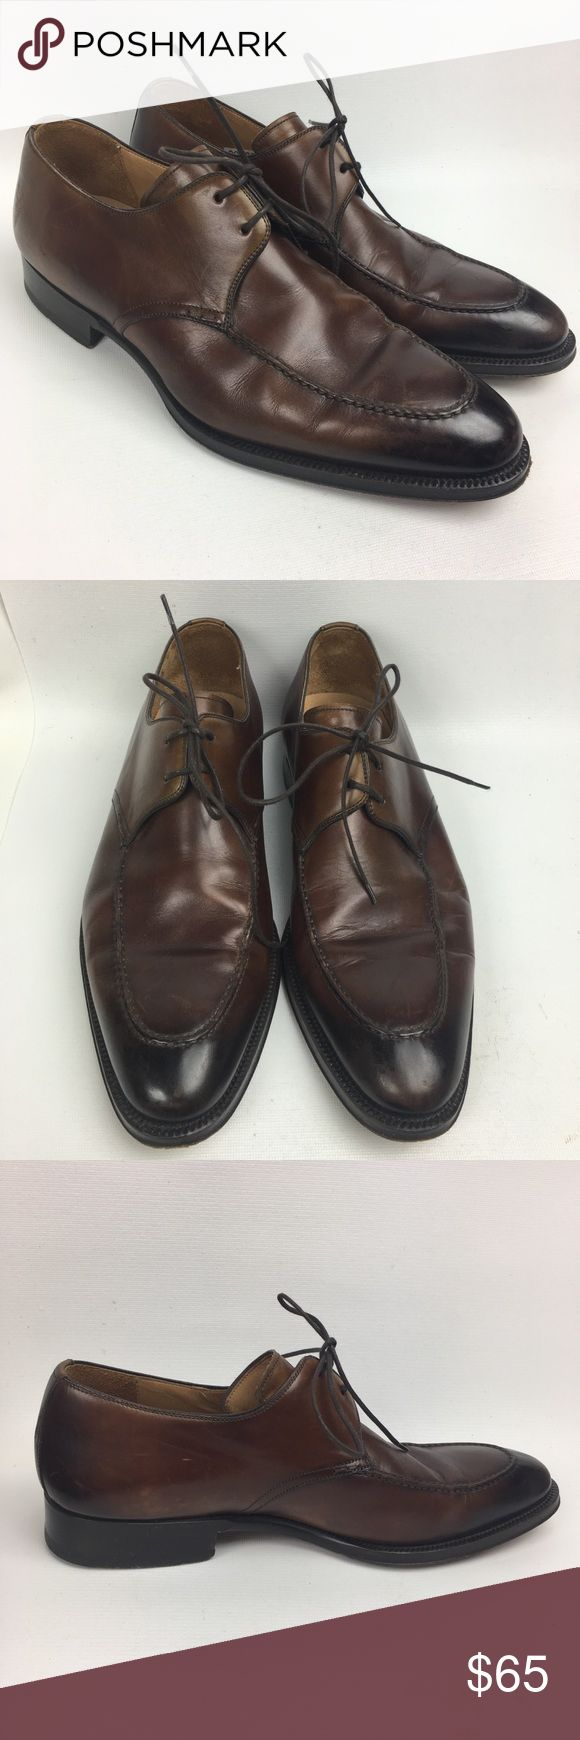 MAGNANNI Sz 9 Dress Oxfords Shoes Men's Pre owned, good used condition, some s...